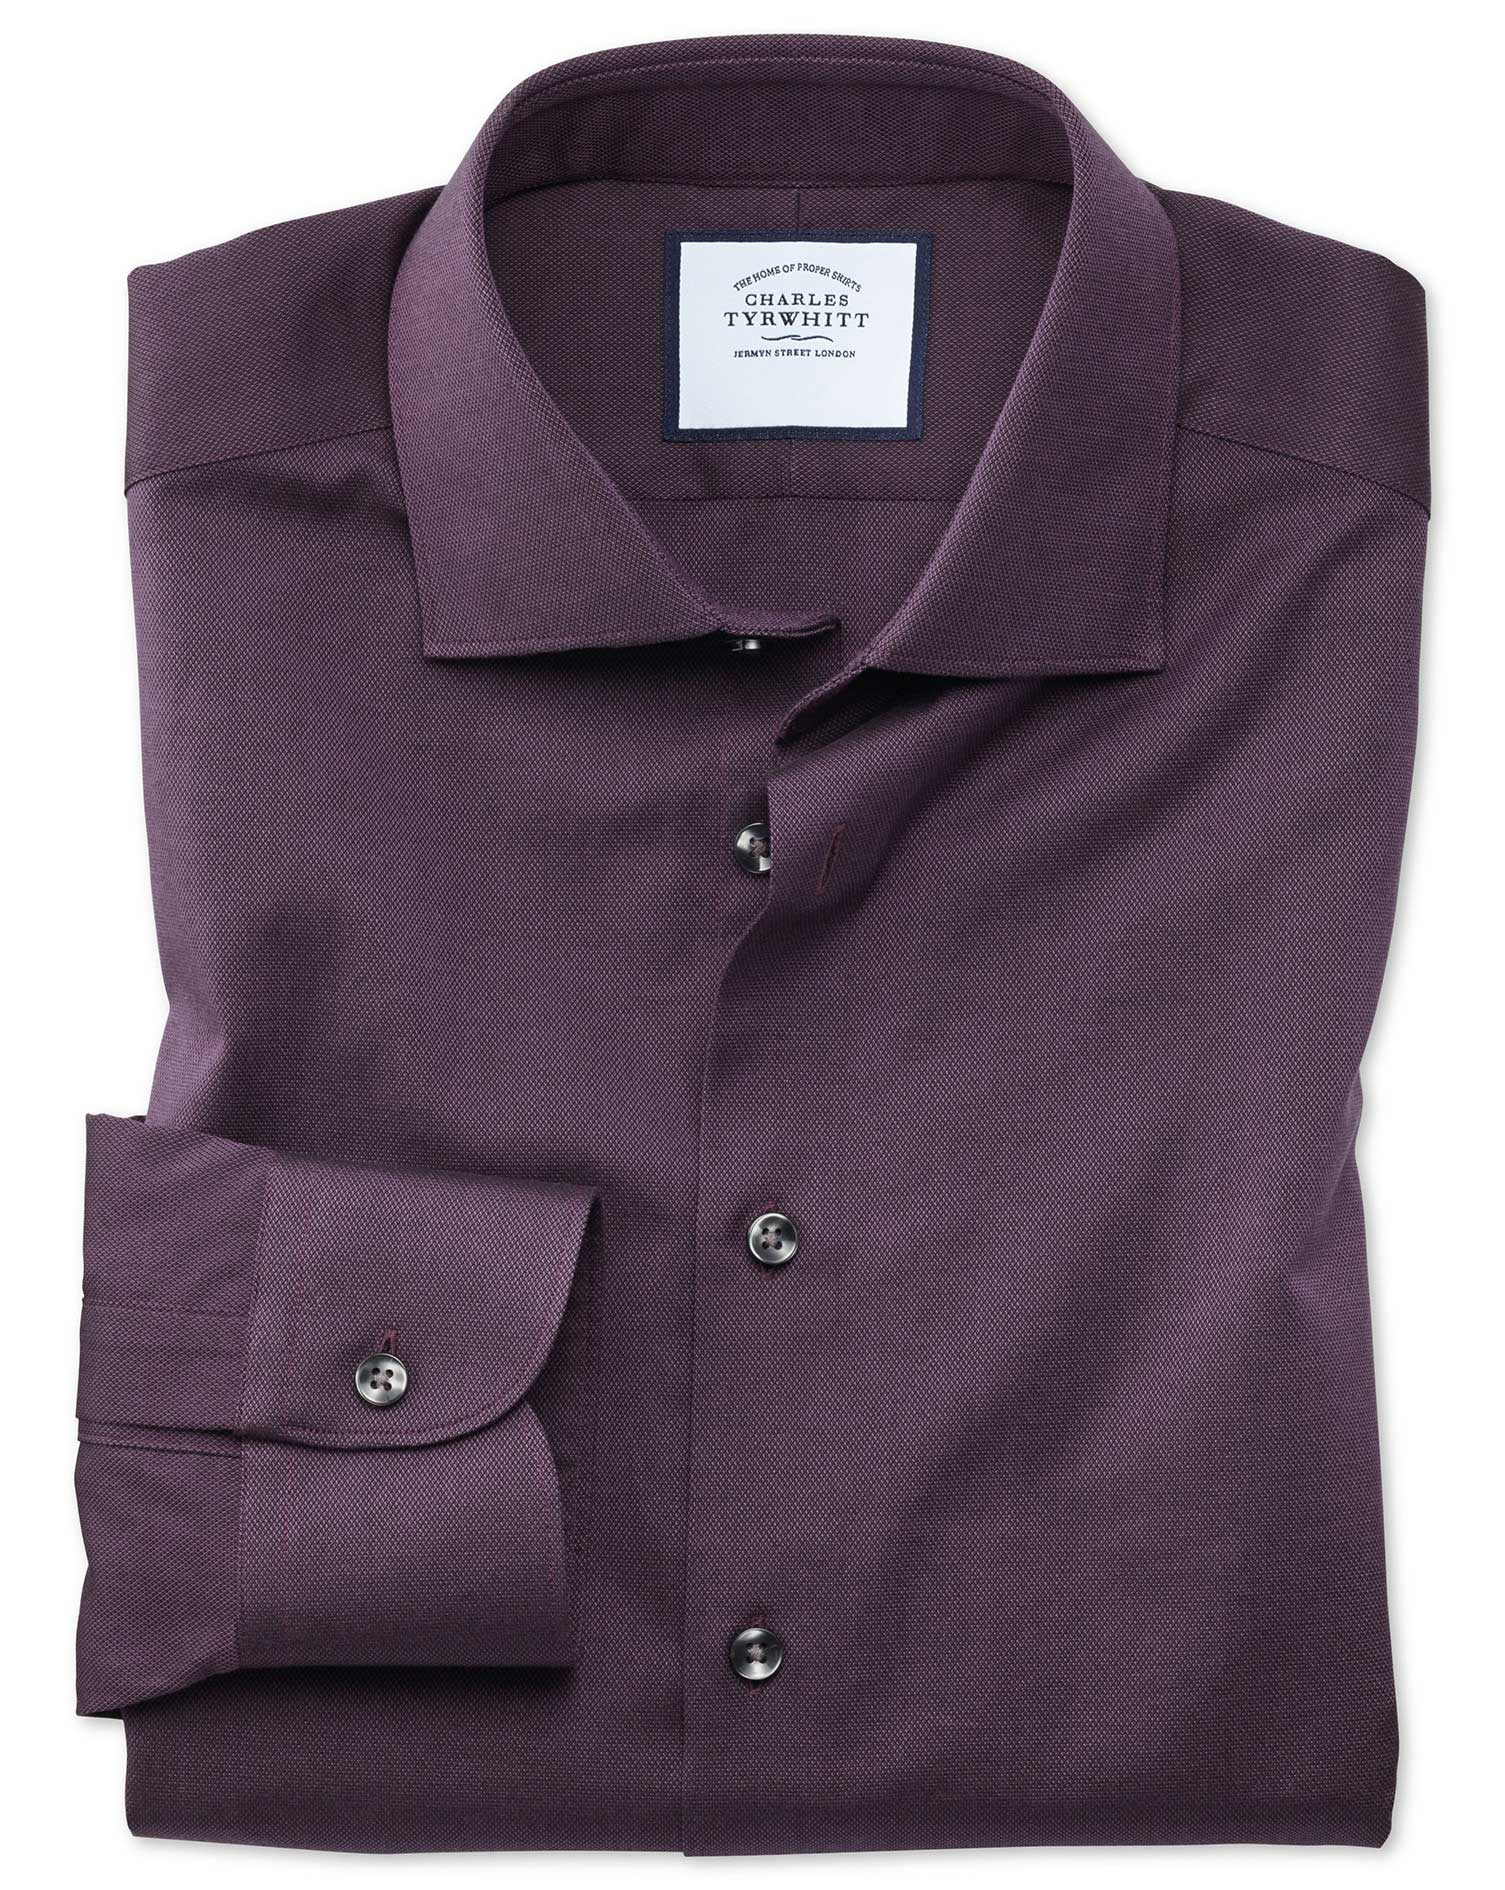 Extra Slim Fit Business Casual Berry Royal Oxford Cotton Formal Shirt Single Cuff Size 16/36 by Char